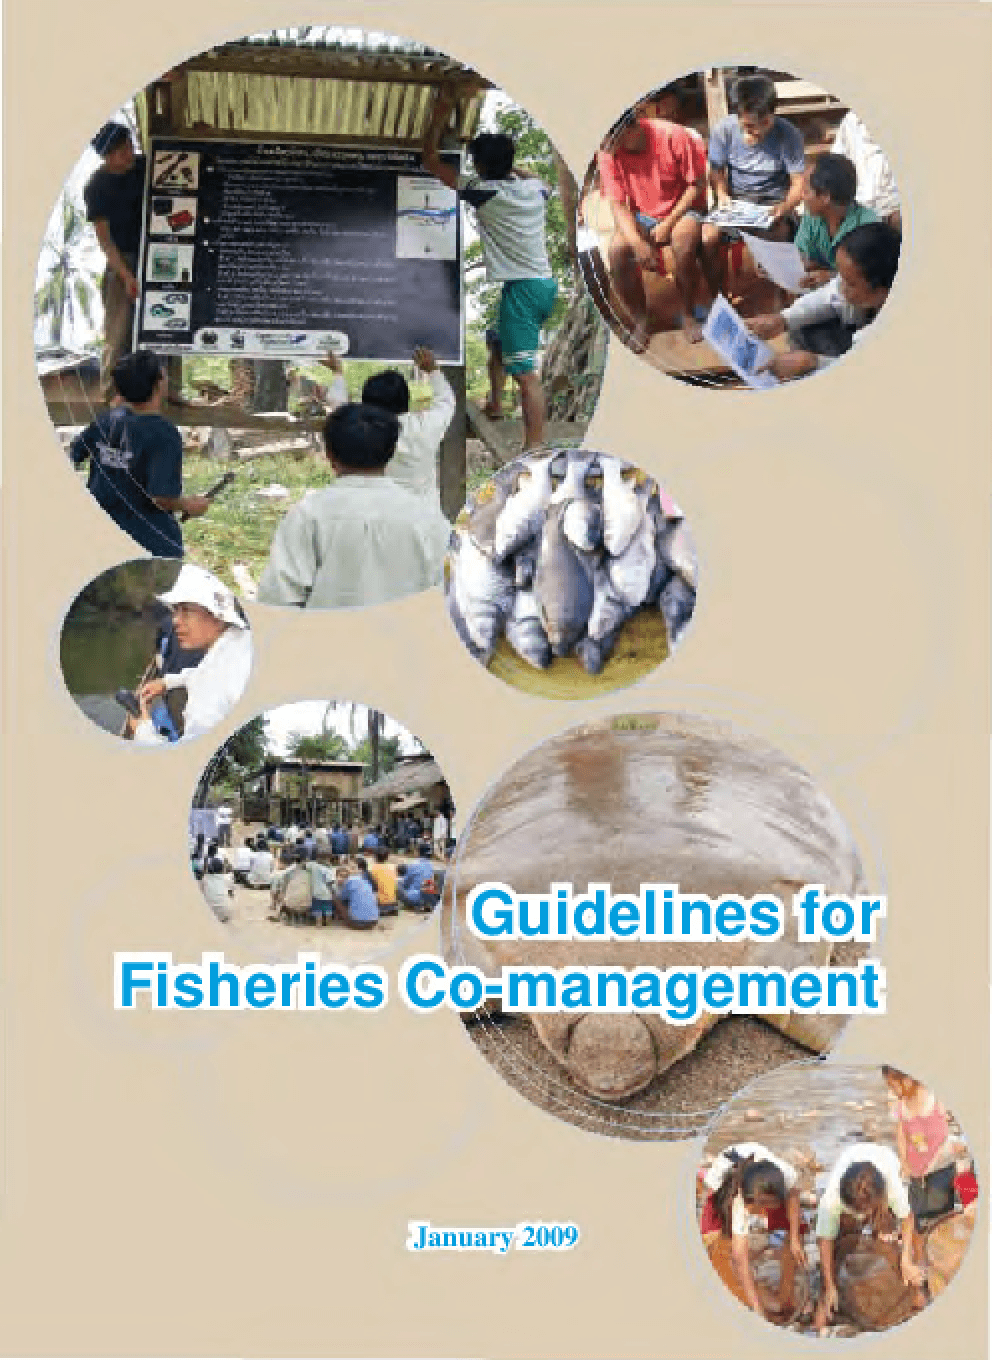 Guidelines for Fisheries Co-managment